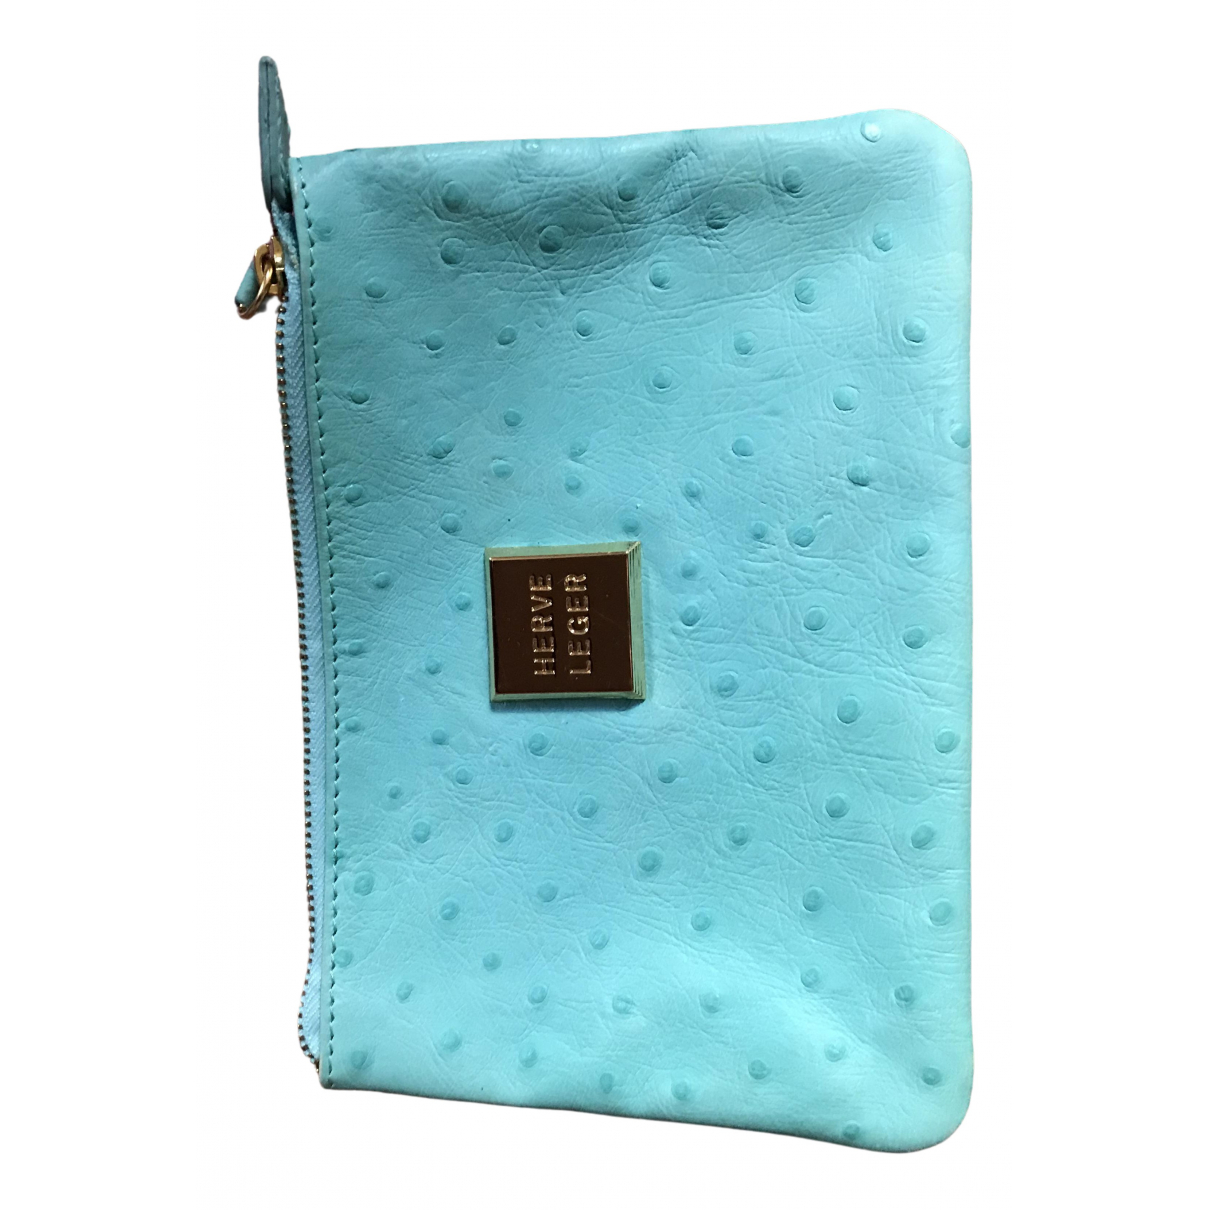 Herve Leger \N Turquoise Ostrich Purses, wallet & cases for Women \N